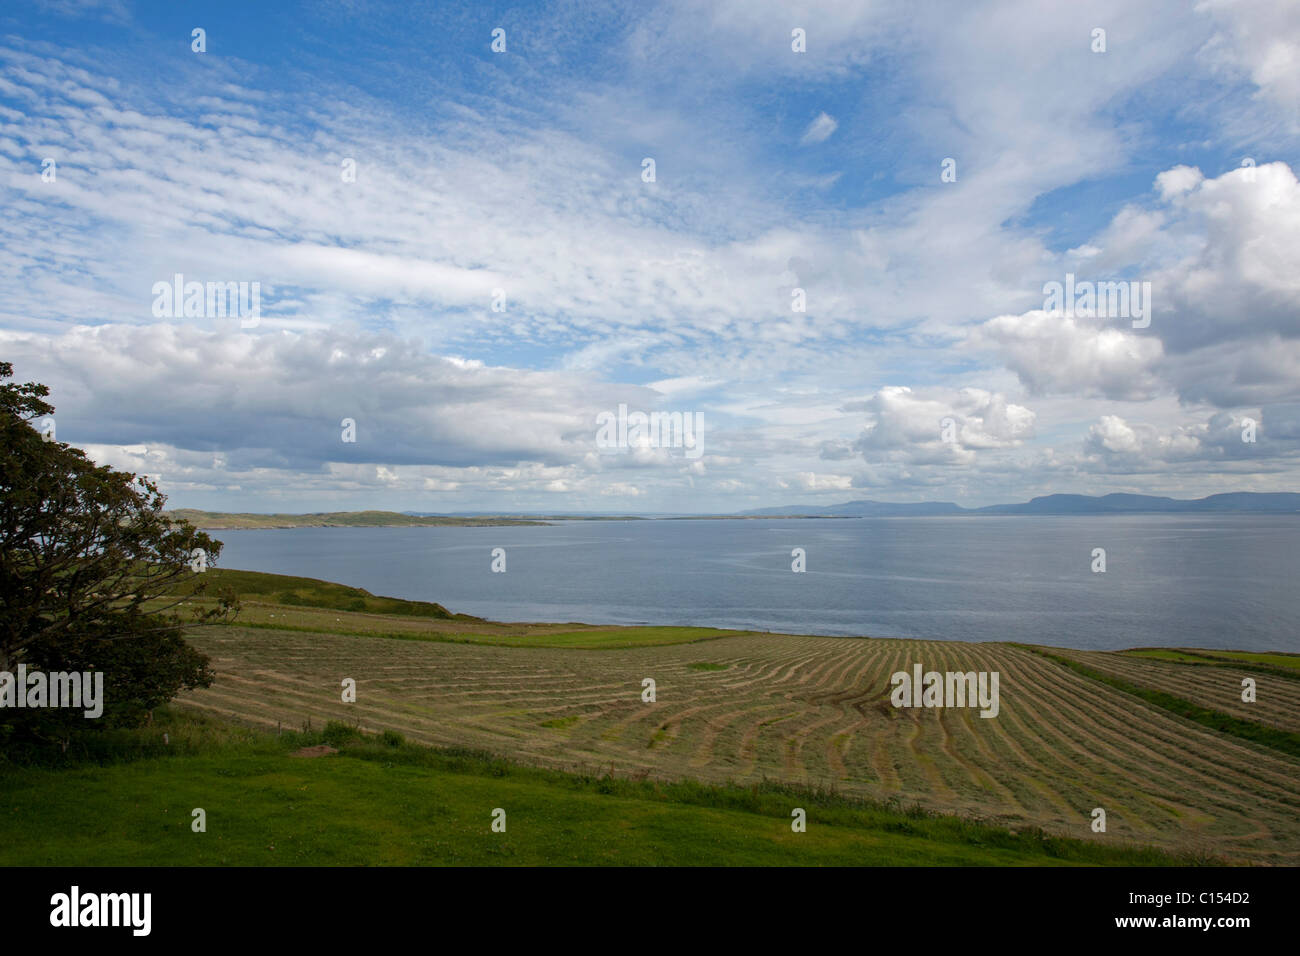 A view across the bay of Muckros in Western Ireland - Stock Image